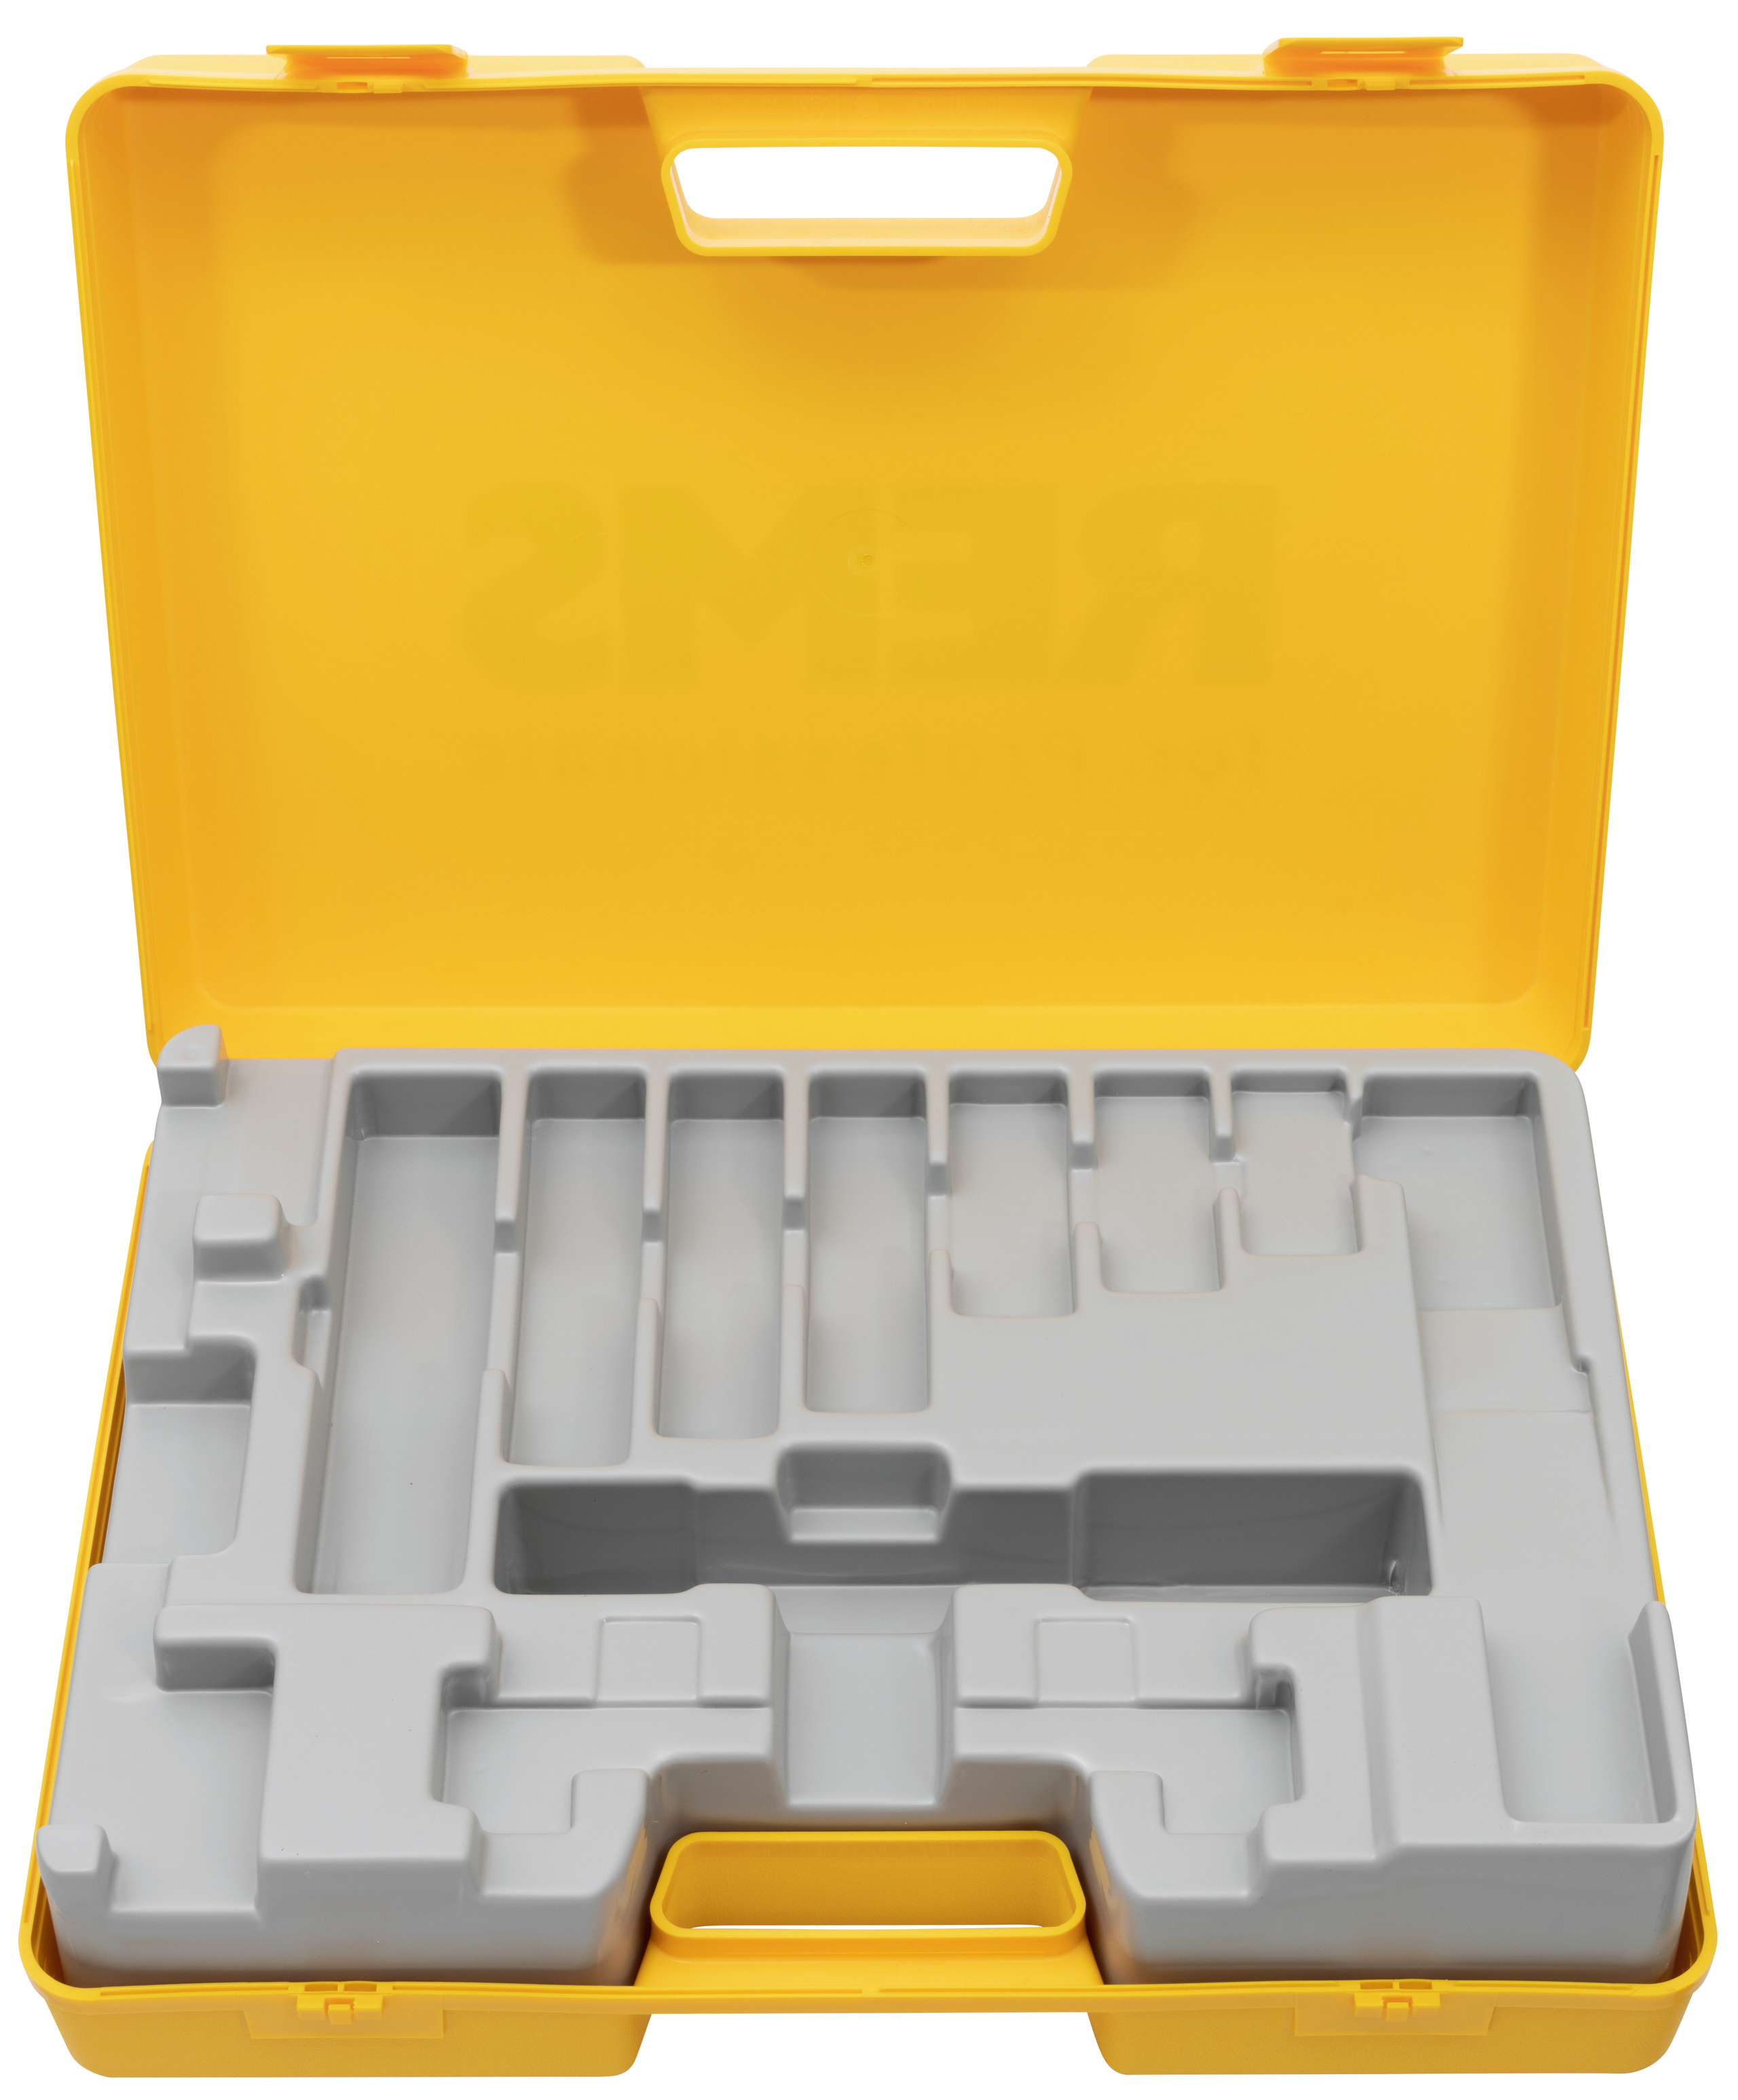 <br/>Plastic carrying case Swing